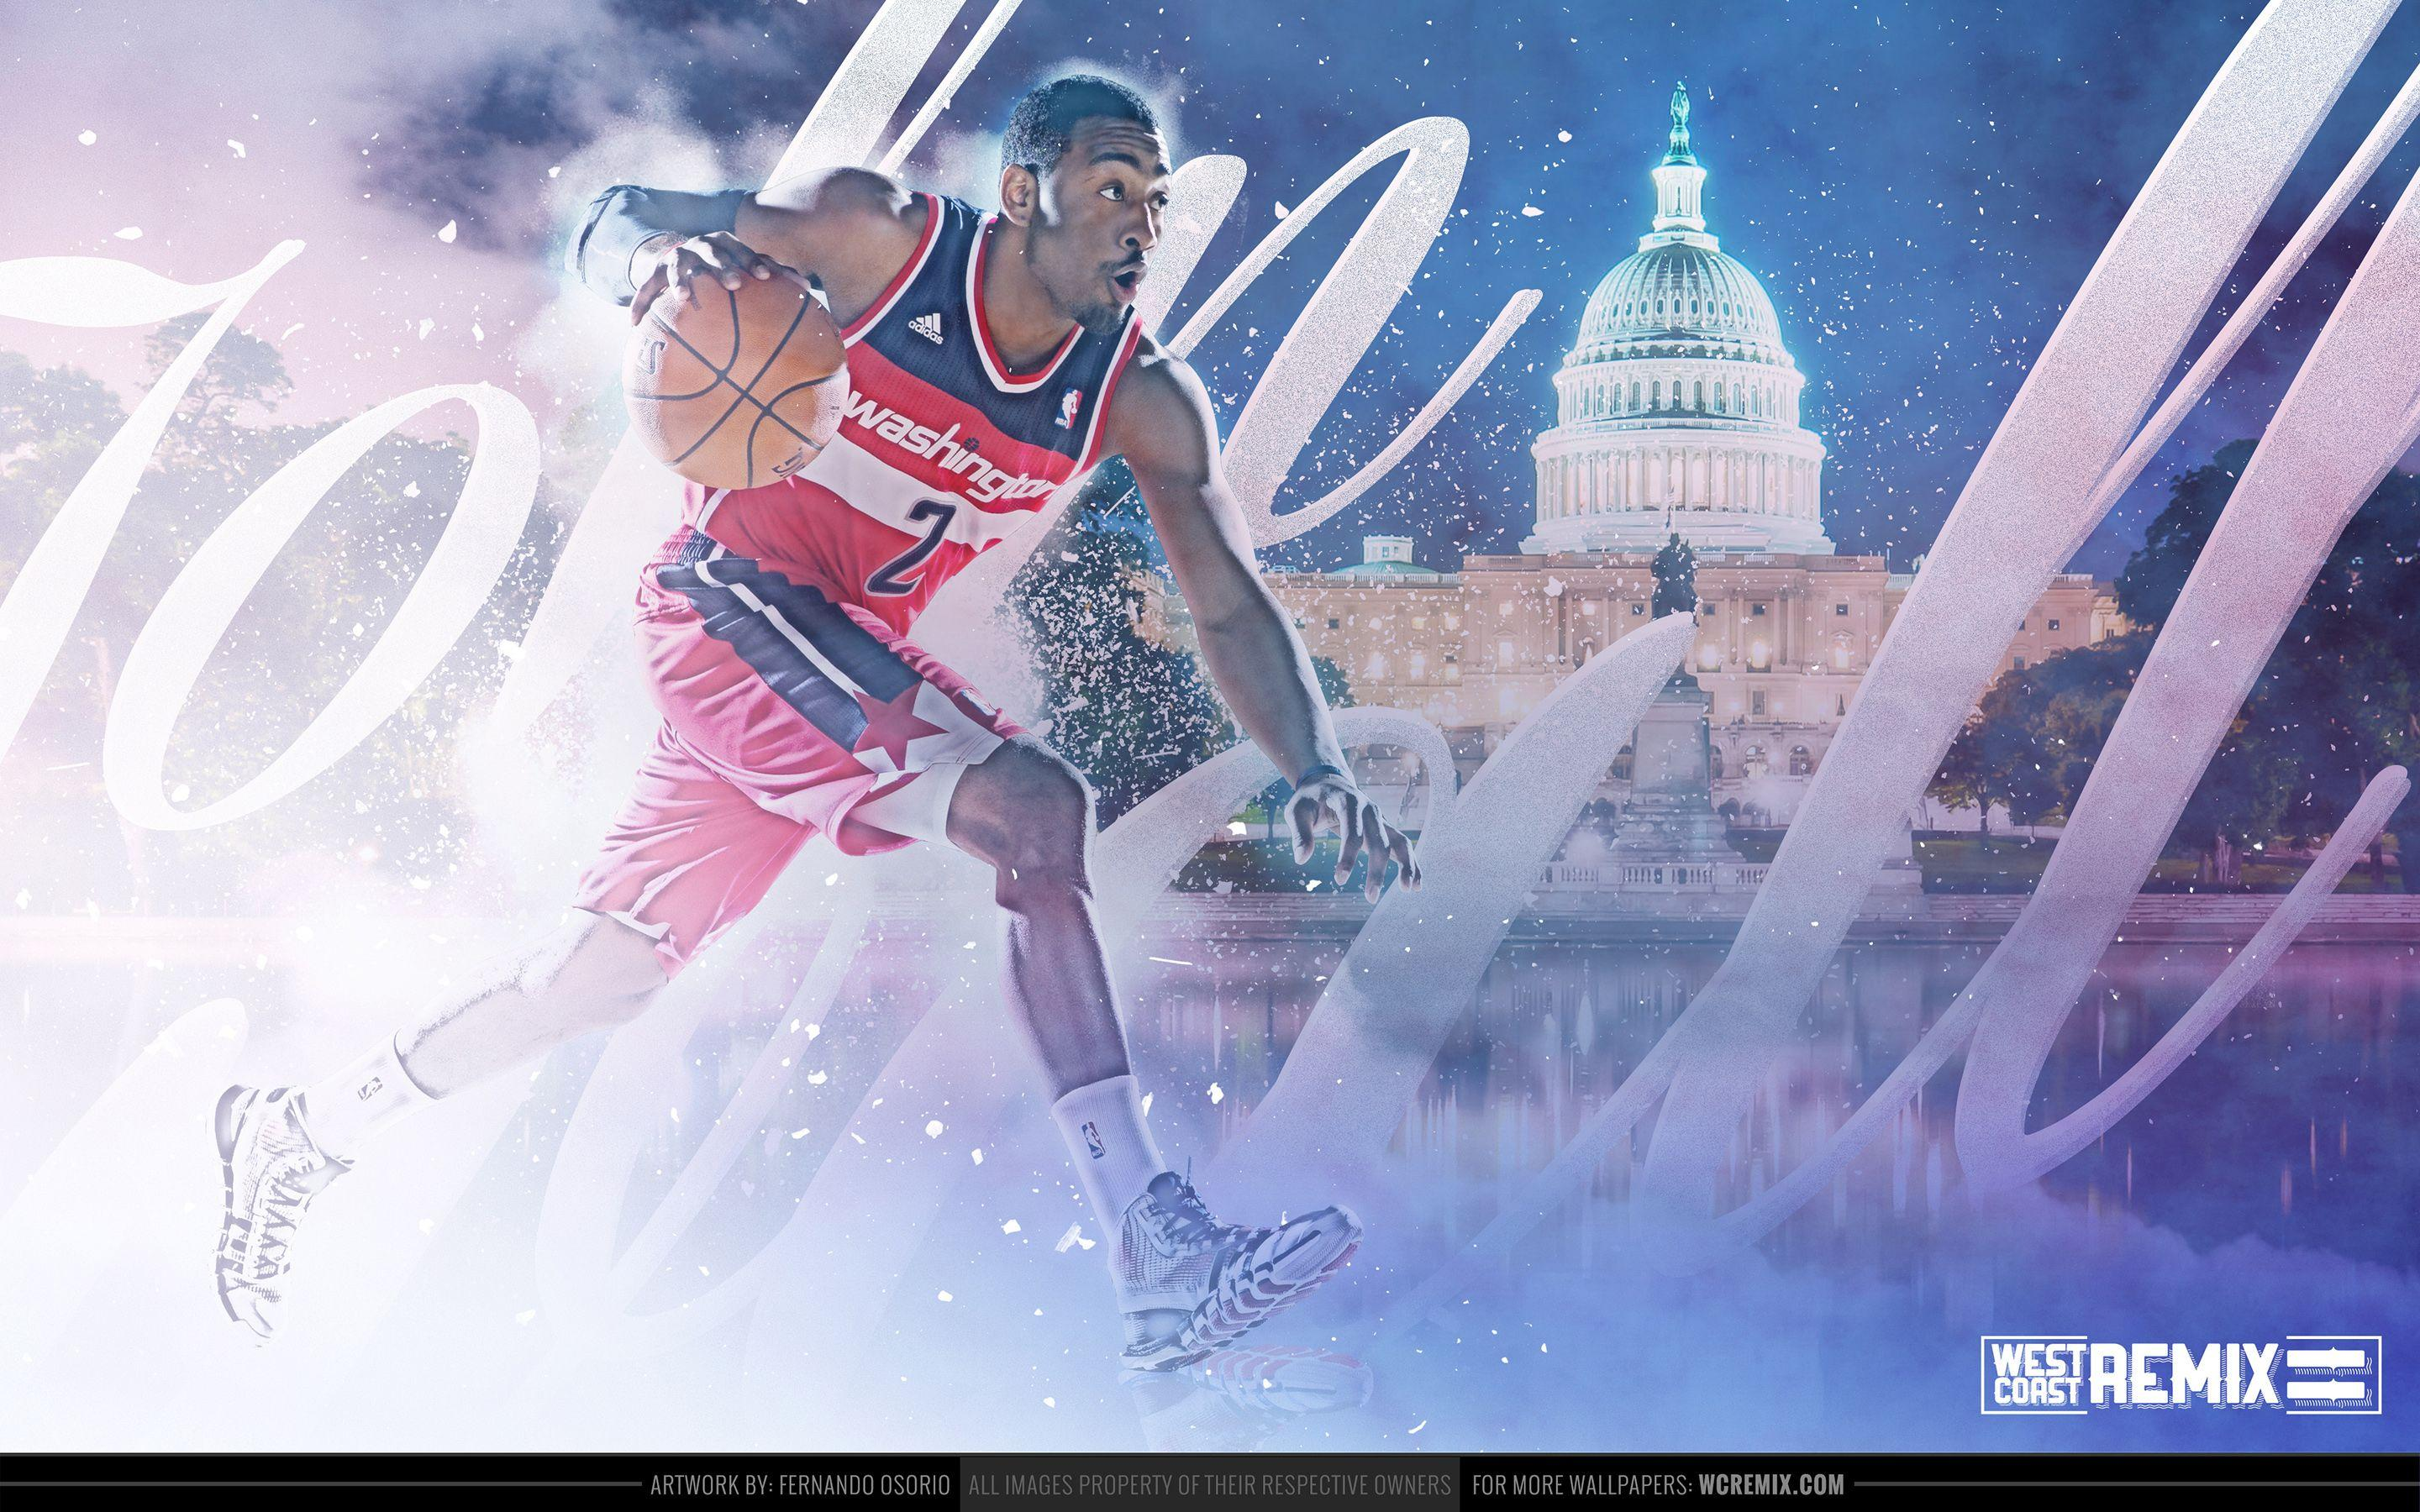 John Wall Wallpaper Art - West Coast Remix